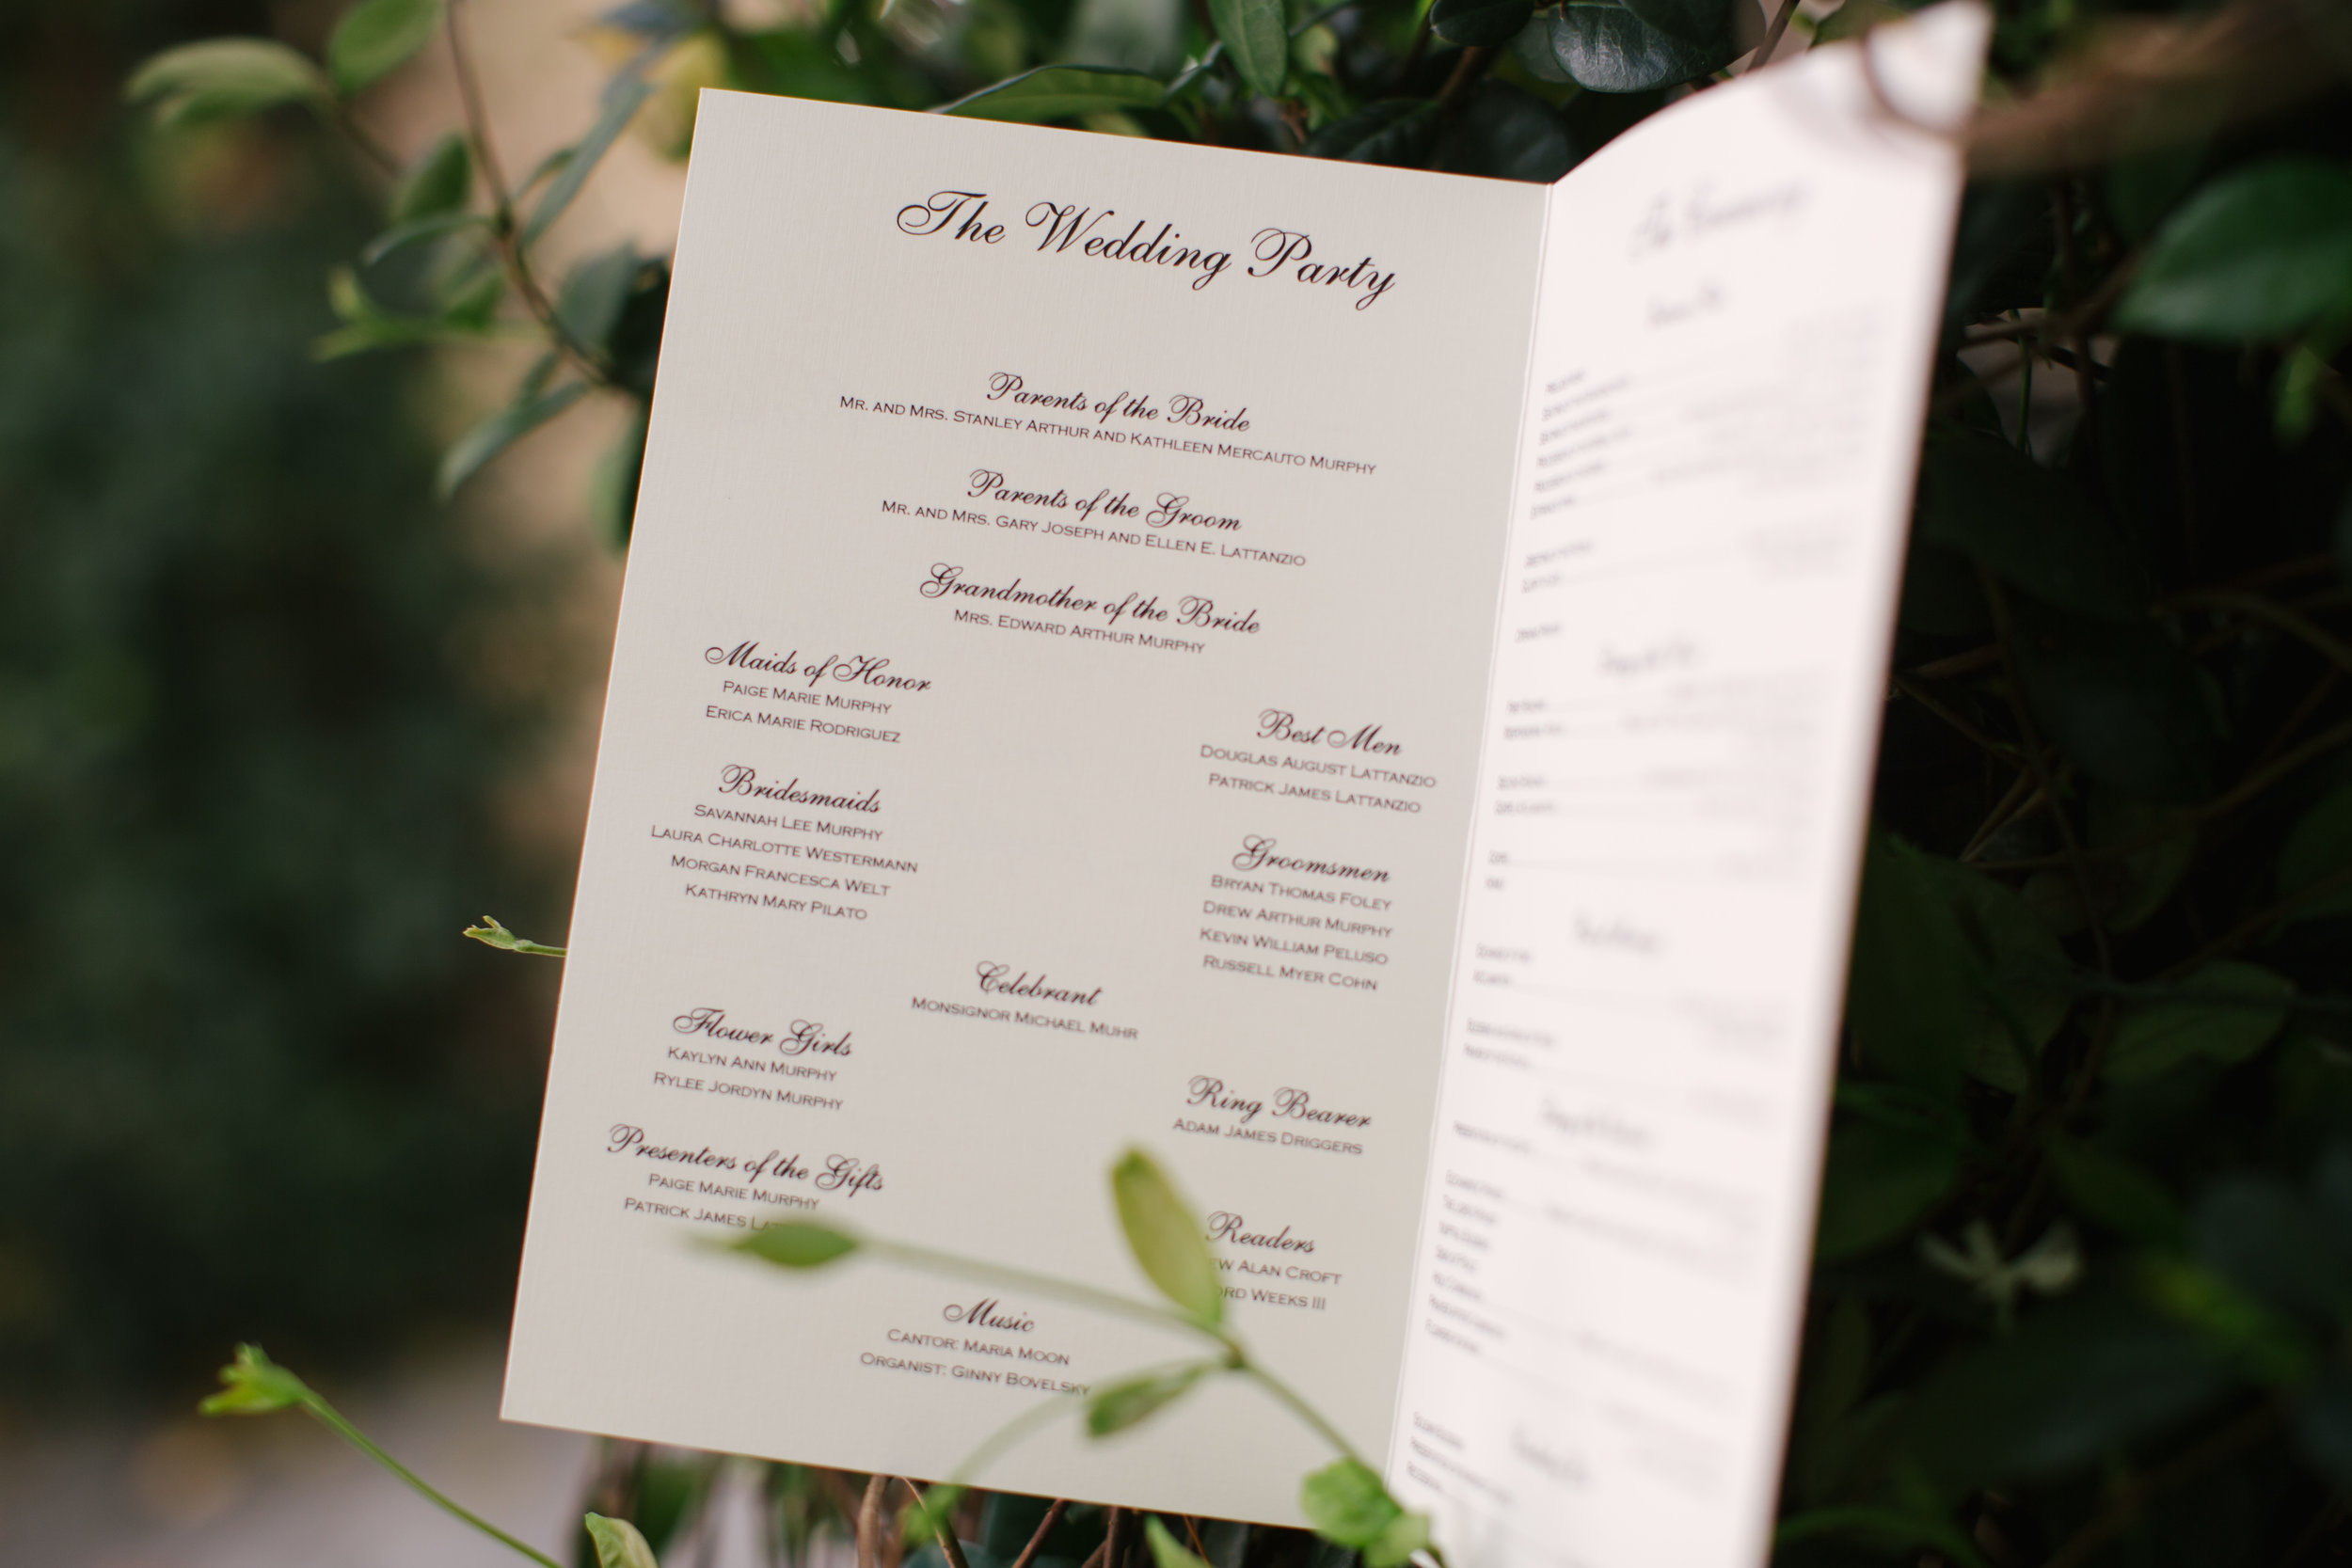 The booklet style program in an elegant black and white design with script detailing.